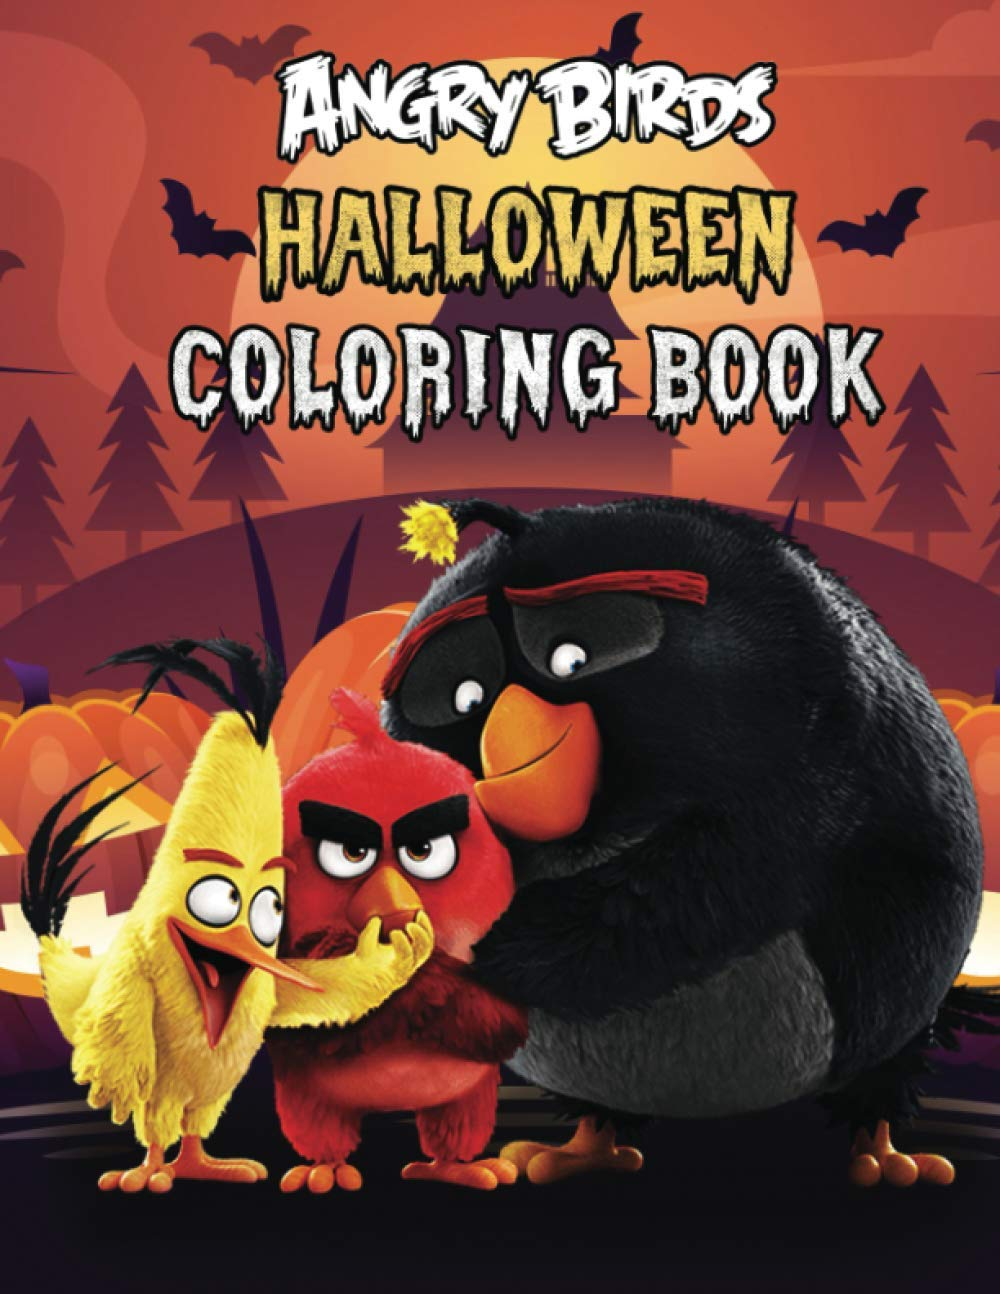 Angry Birds Halloween Coloring Book Super Halloween Gift For Kids And Fans Great Coloring Book With High Quality Images Costa Diego 9798698259428 Amazon Com Books